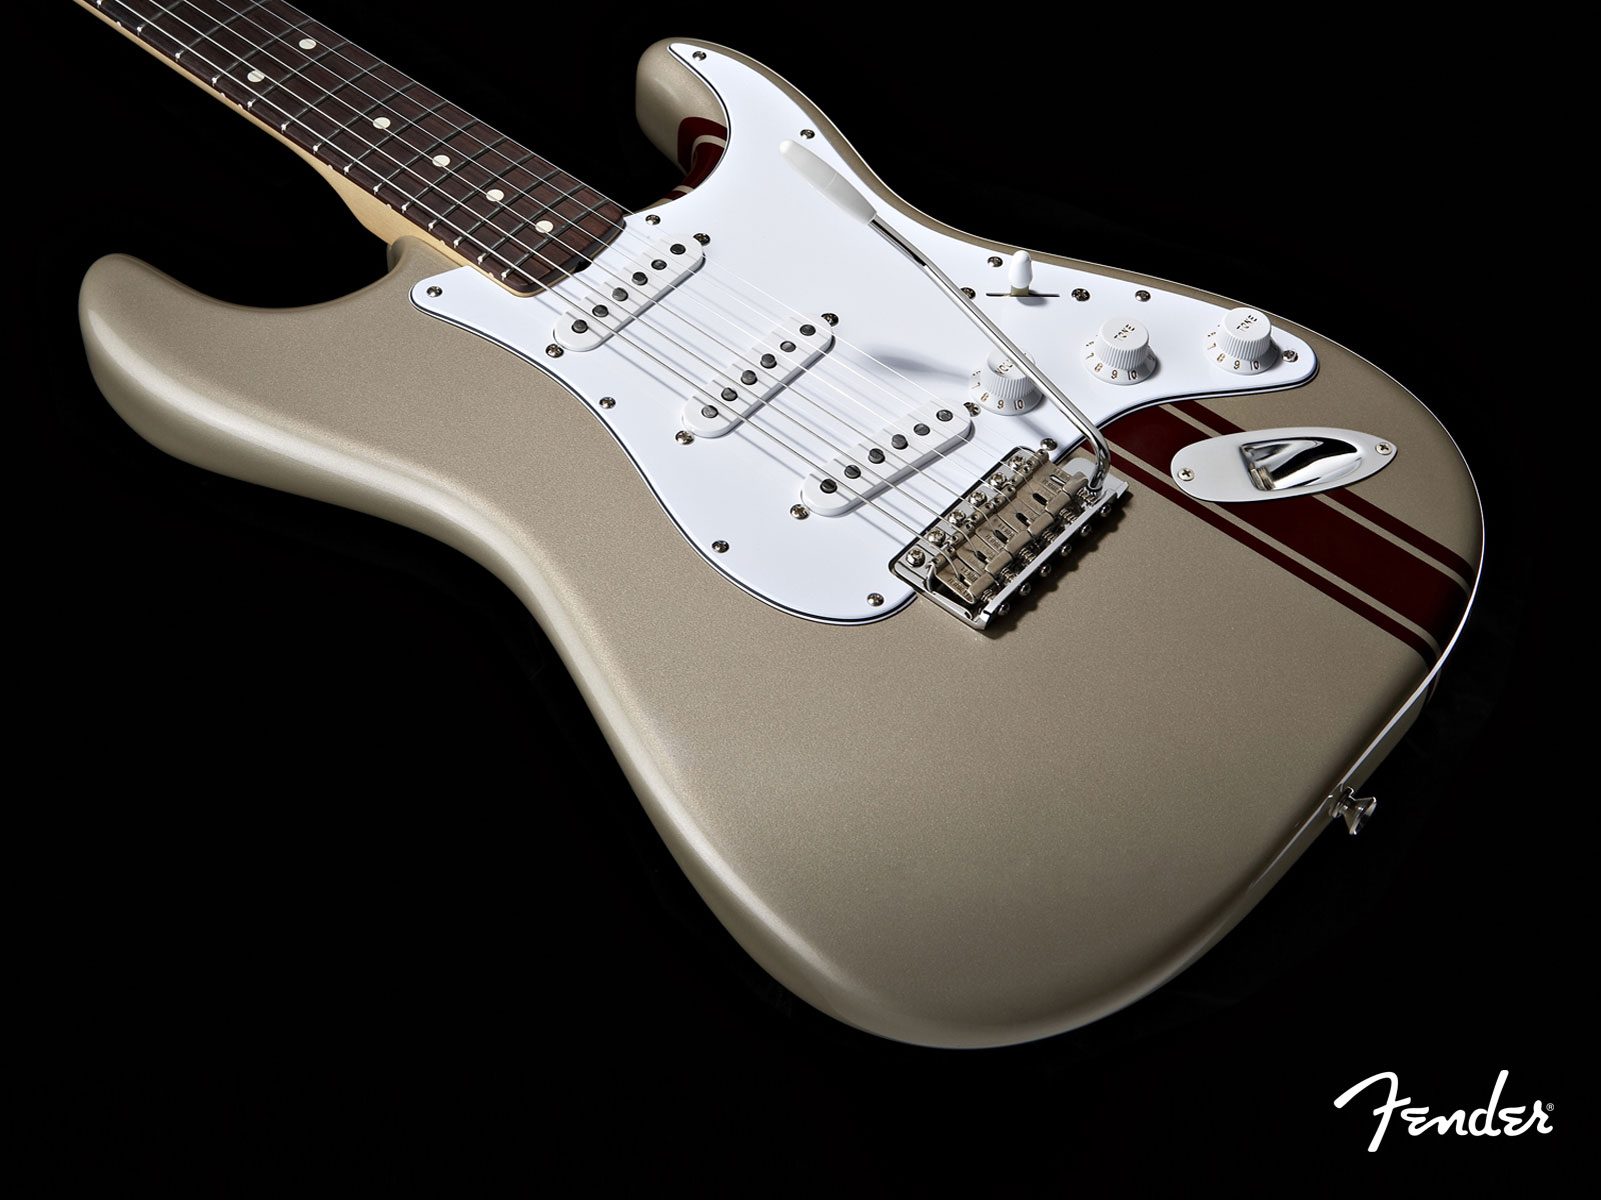 Fender Stratocaster Wallpaper by cmdry72 1601x1200